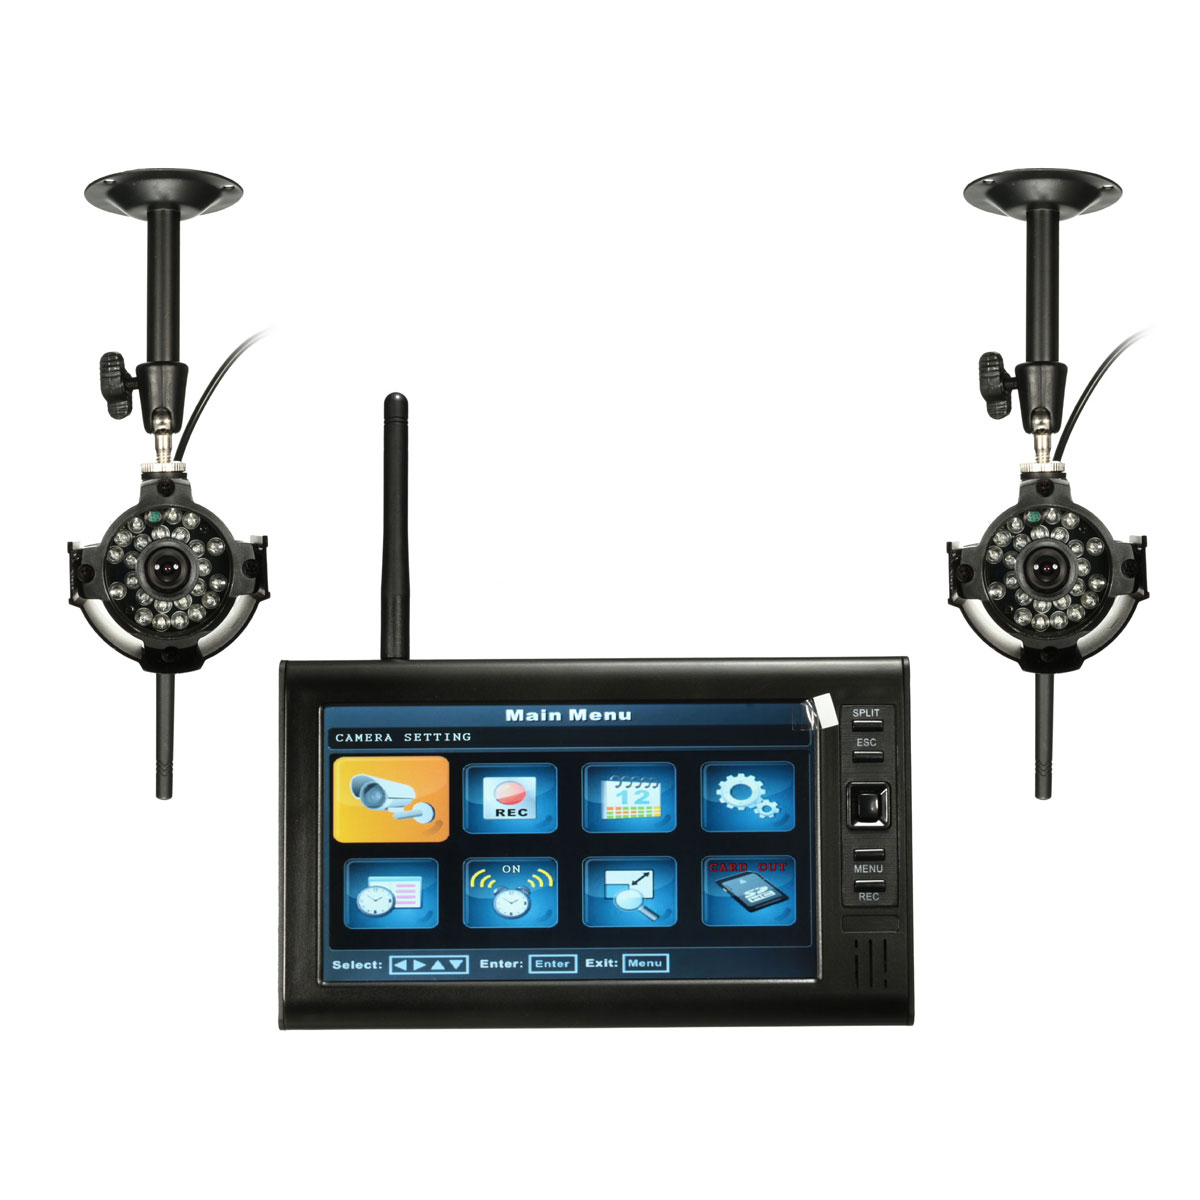 Cctv Home 7inch Ldc Monitor Dvr With 2 Wireless Cctv Camera Motion Detect Home Security System